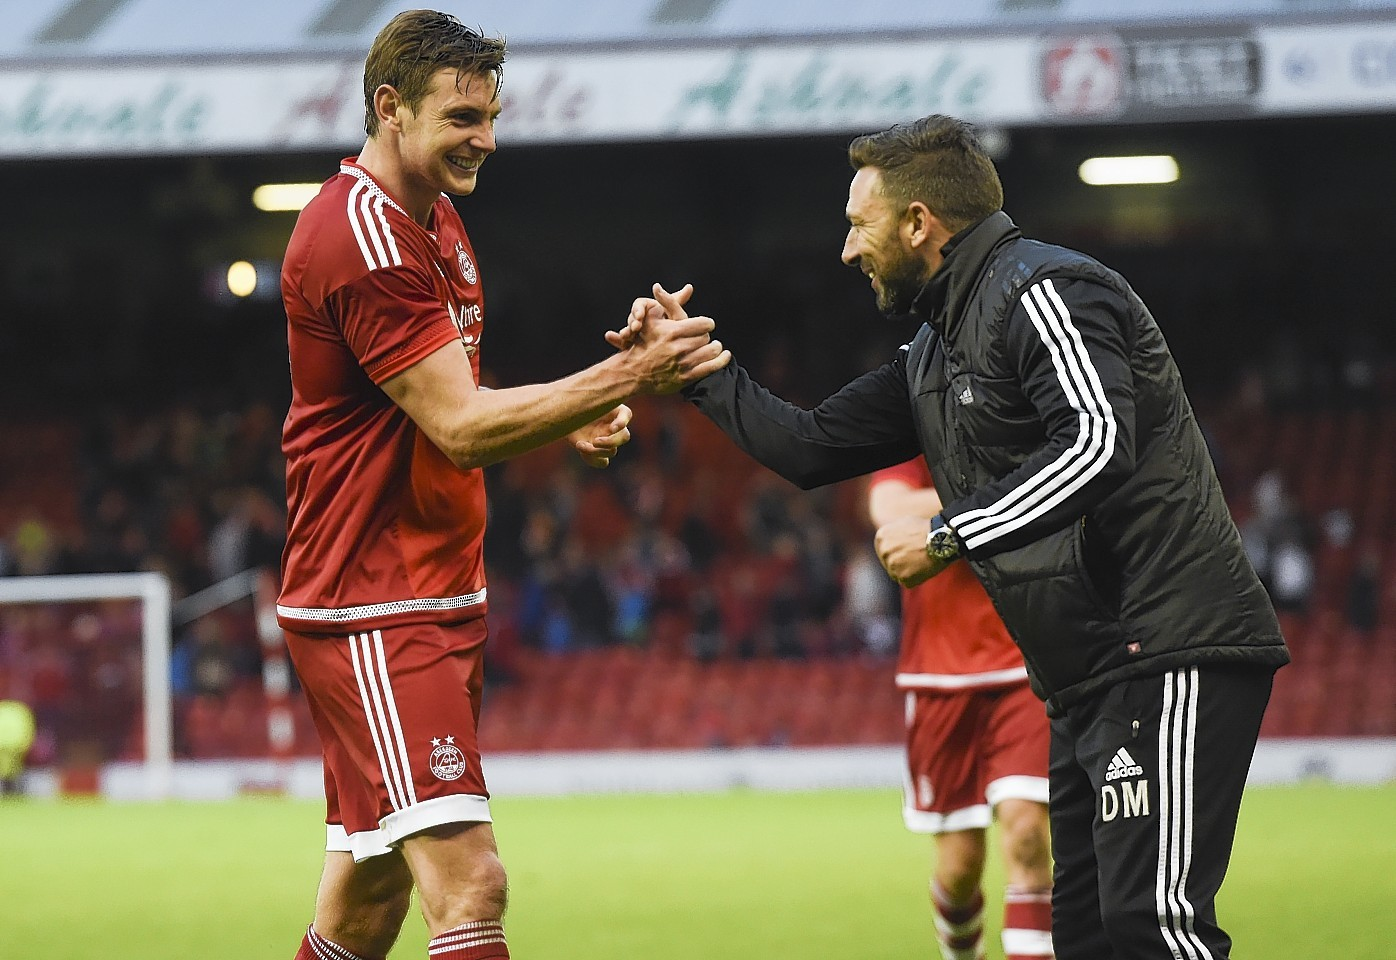 McInnes isn't going anywhere